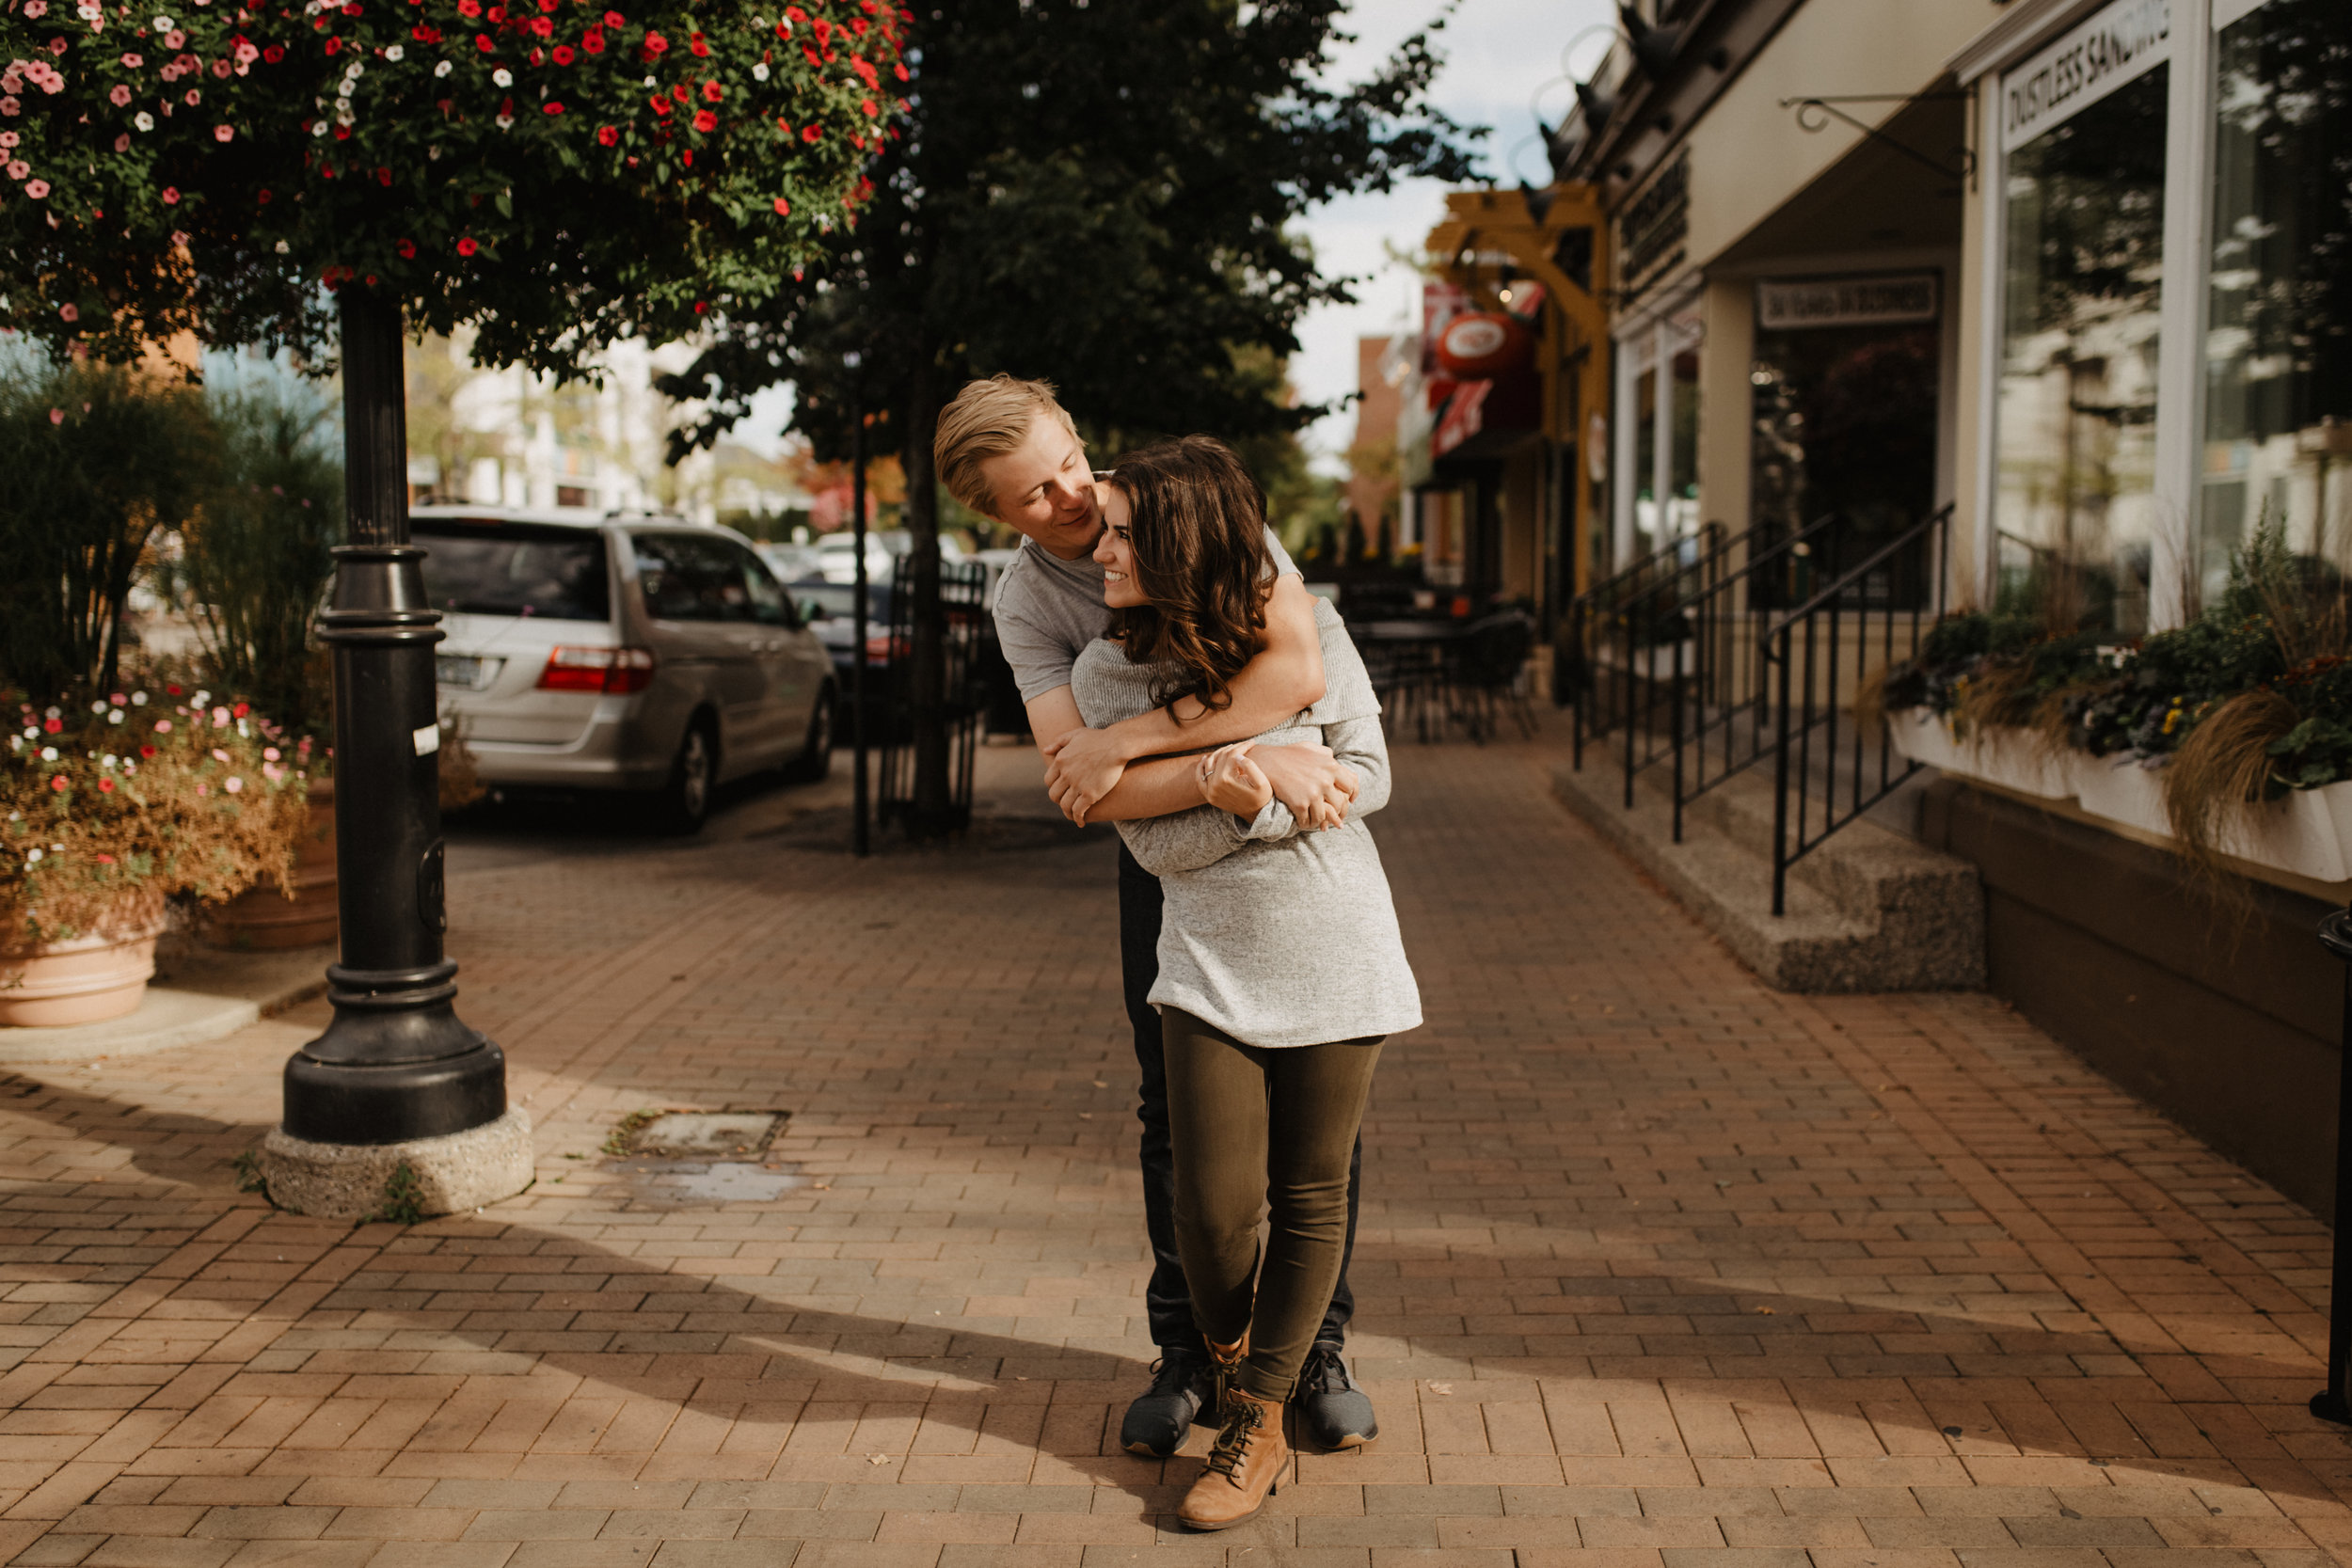 Claire-Rex-Pickar-Engagement-Photography-Collection-86.jpg